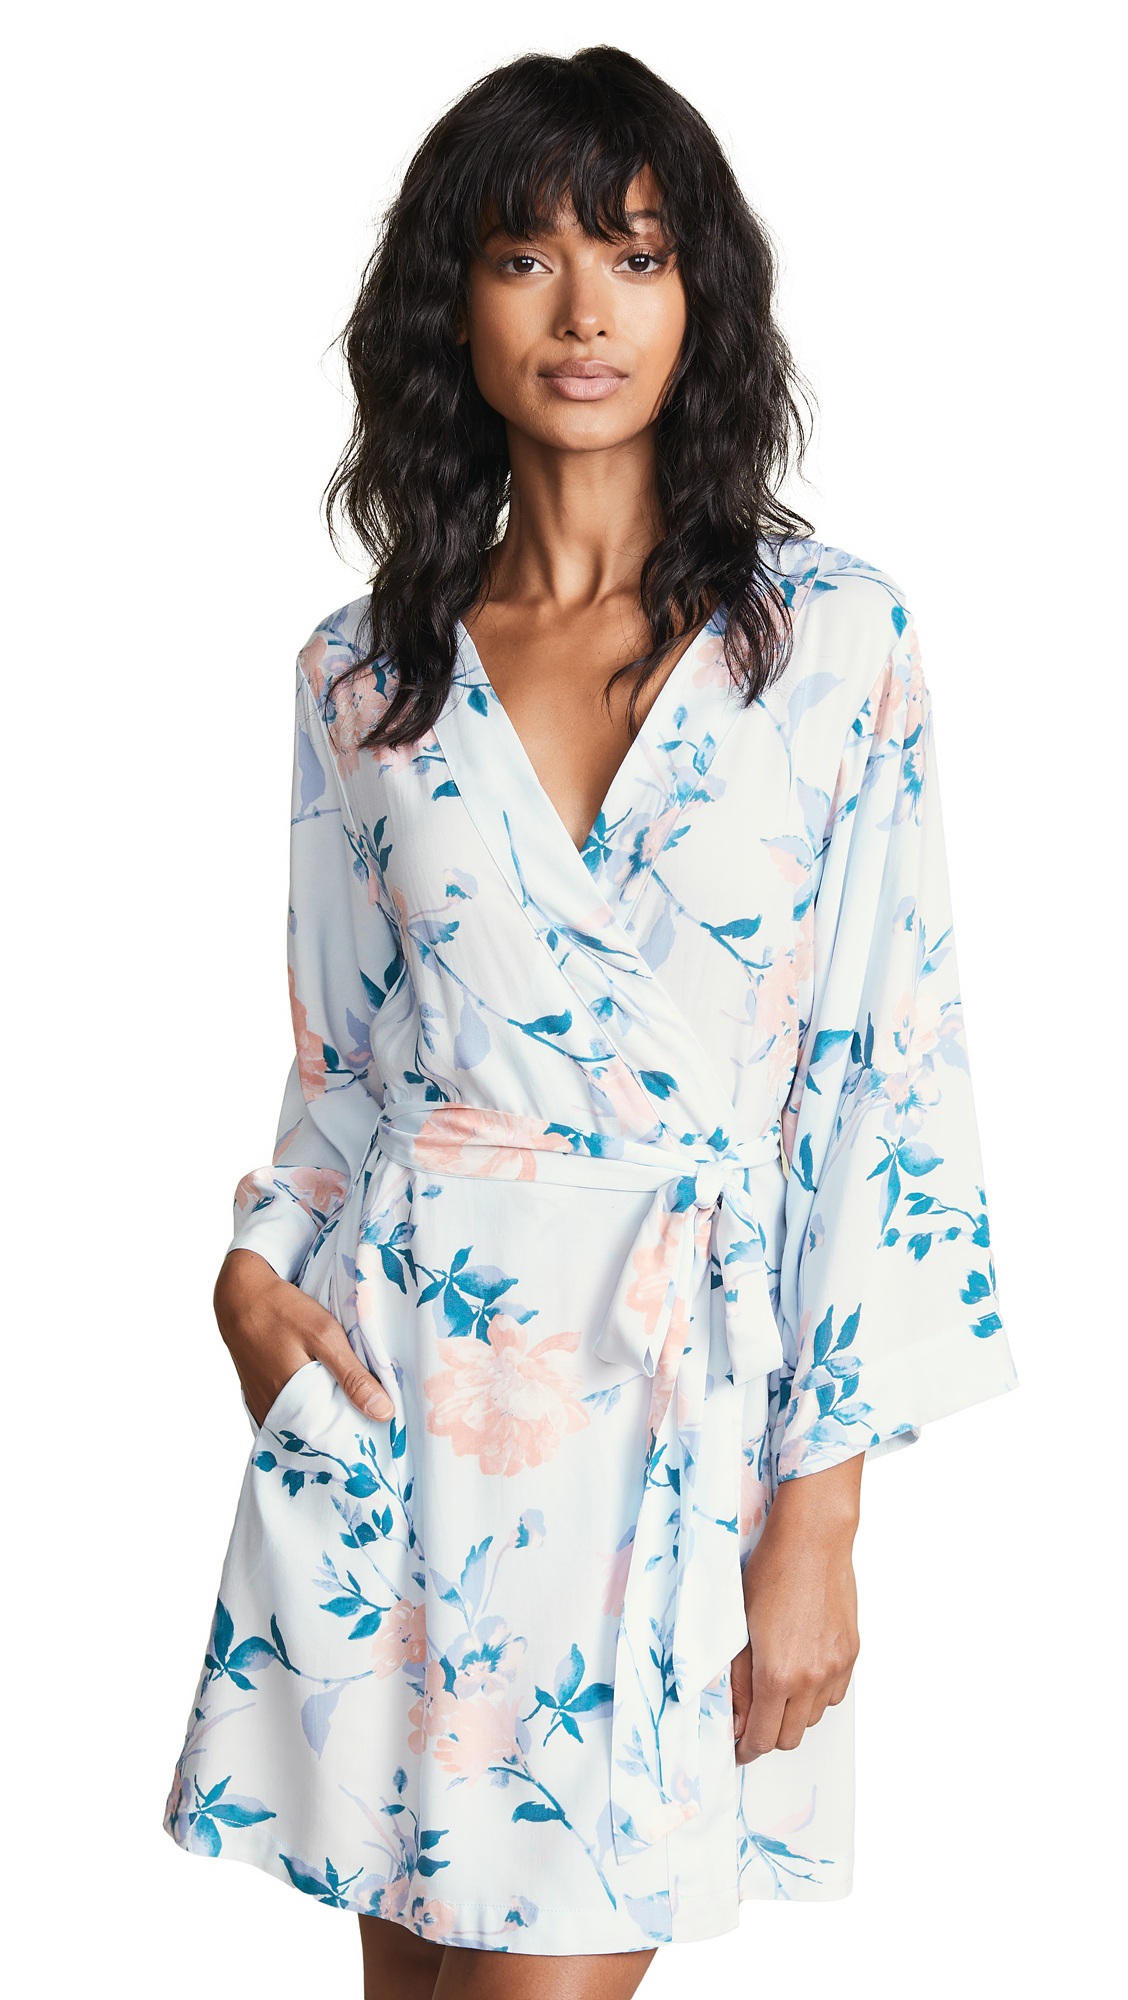 YUMI KIM Dream Lover Robe in Sky Blue